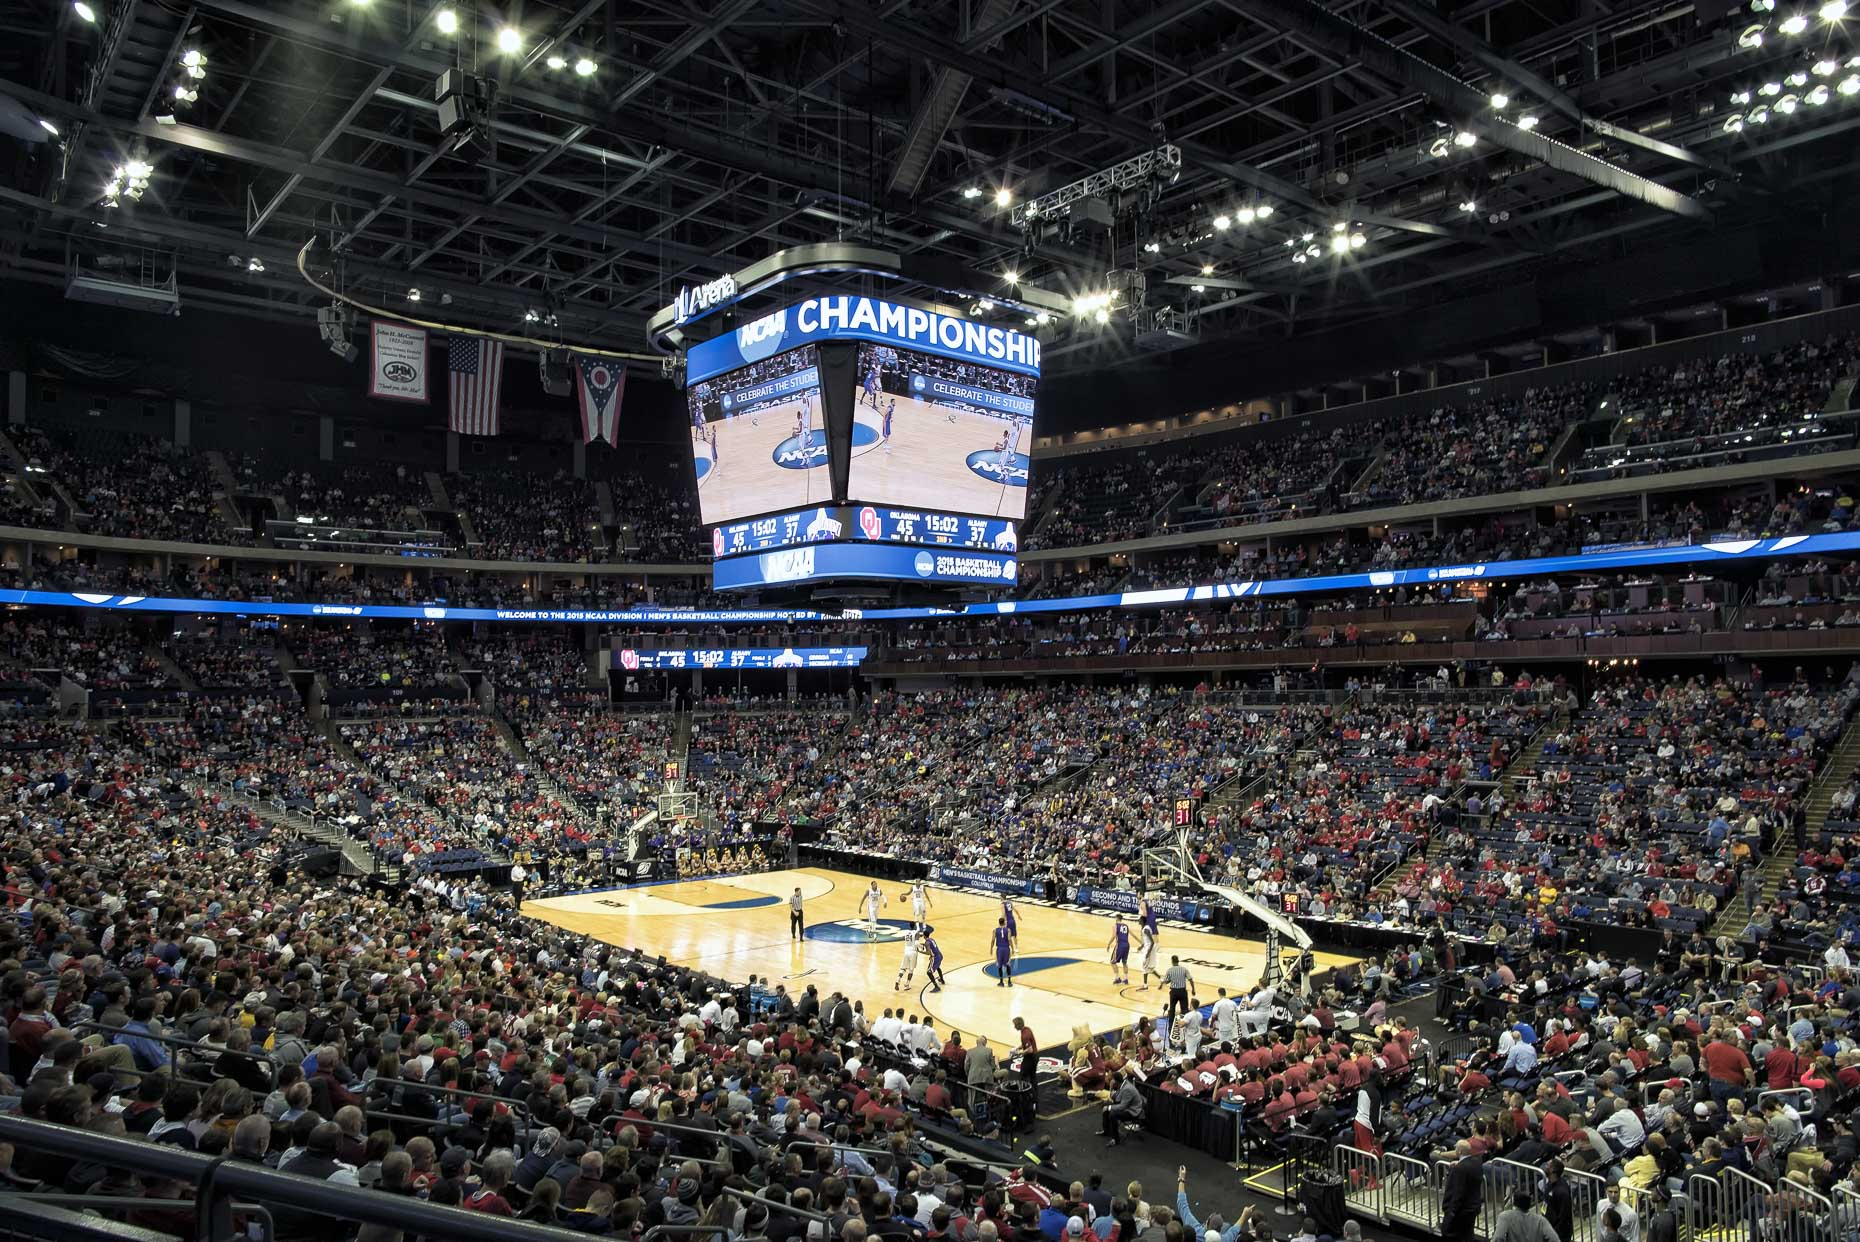 Nationwide Arena by HOK photographed by Lauren K Davis based in Columbus, Ohio